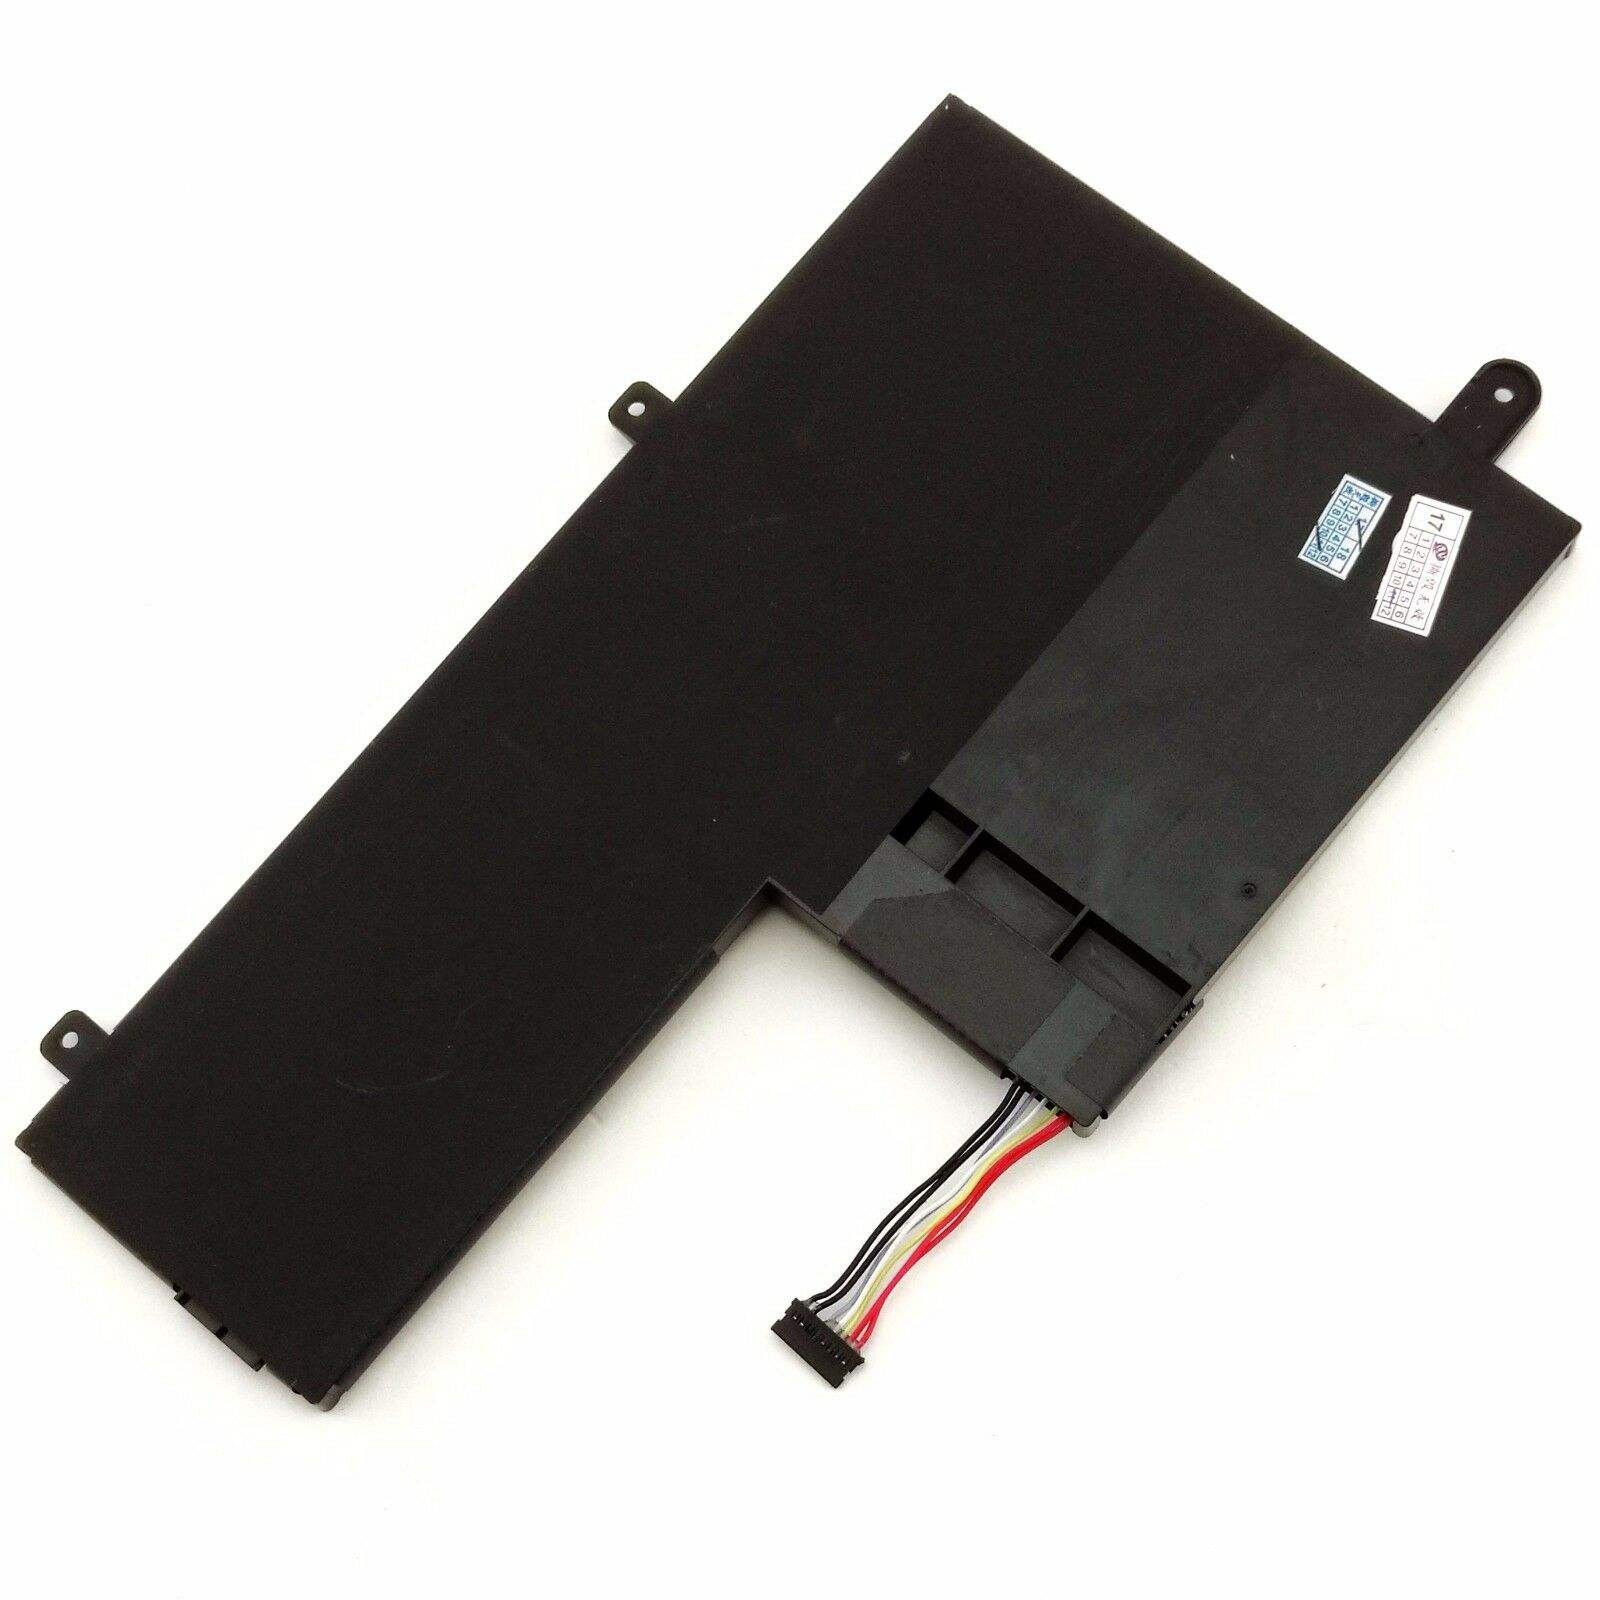 L14M2P21 7.4V 4050mAh (30Wh) 4cell Original laptop battery for Lenovo IdeaPad 300s 310s 510s Series Laptop battery